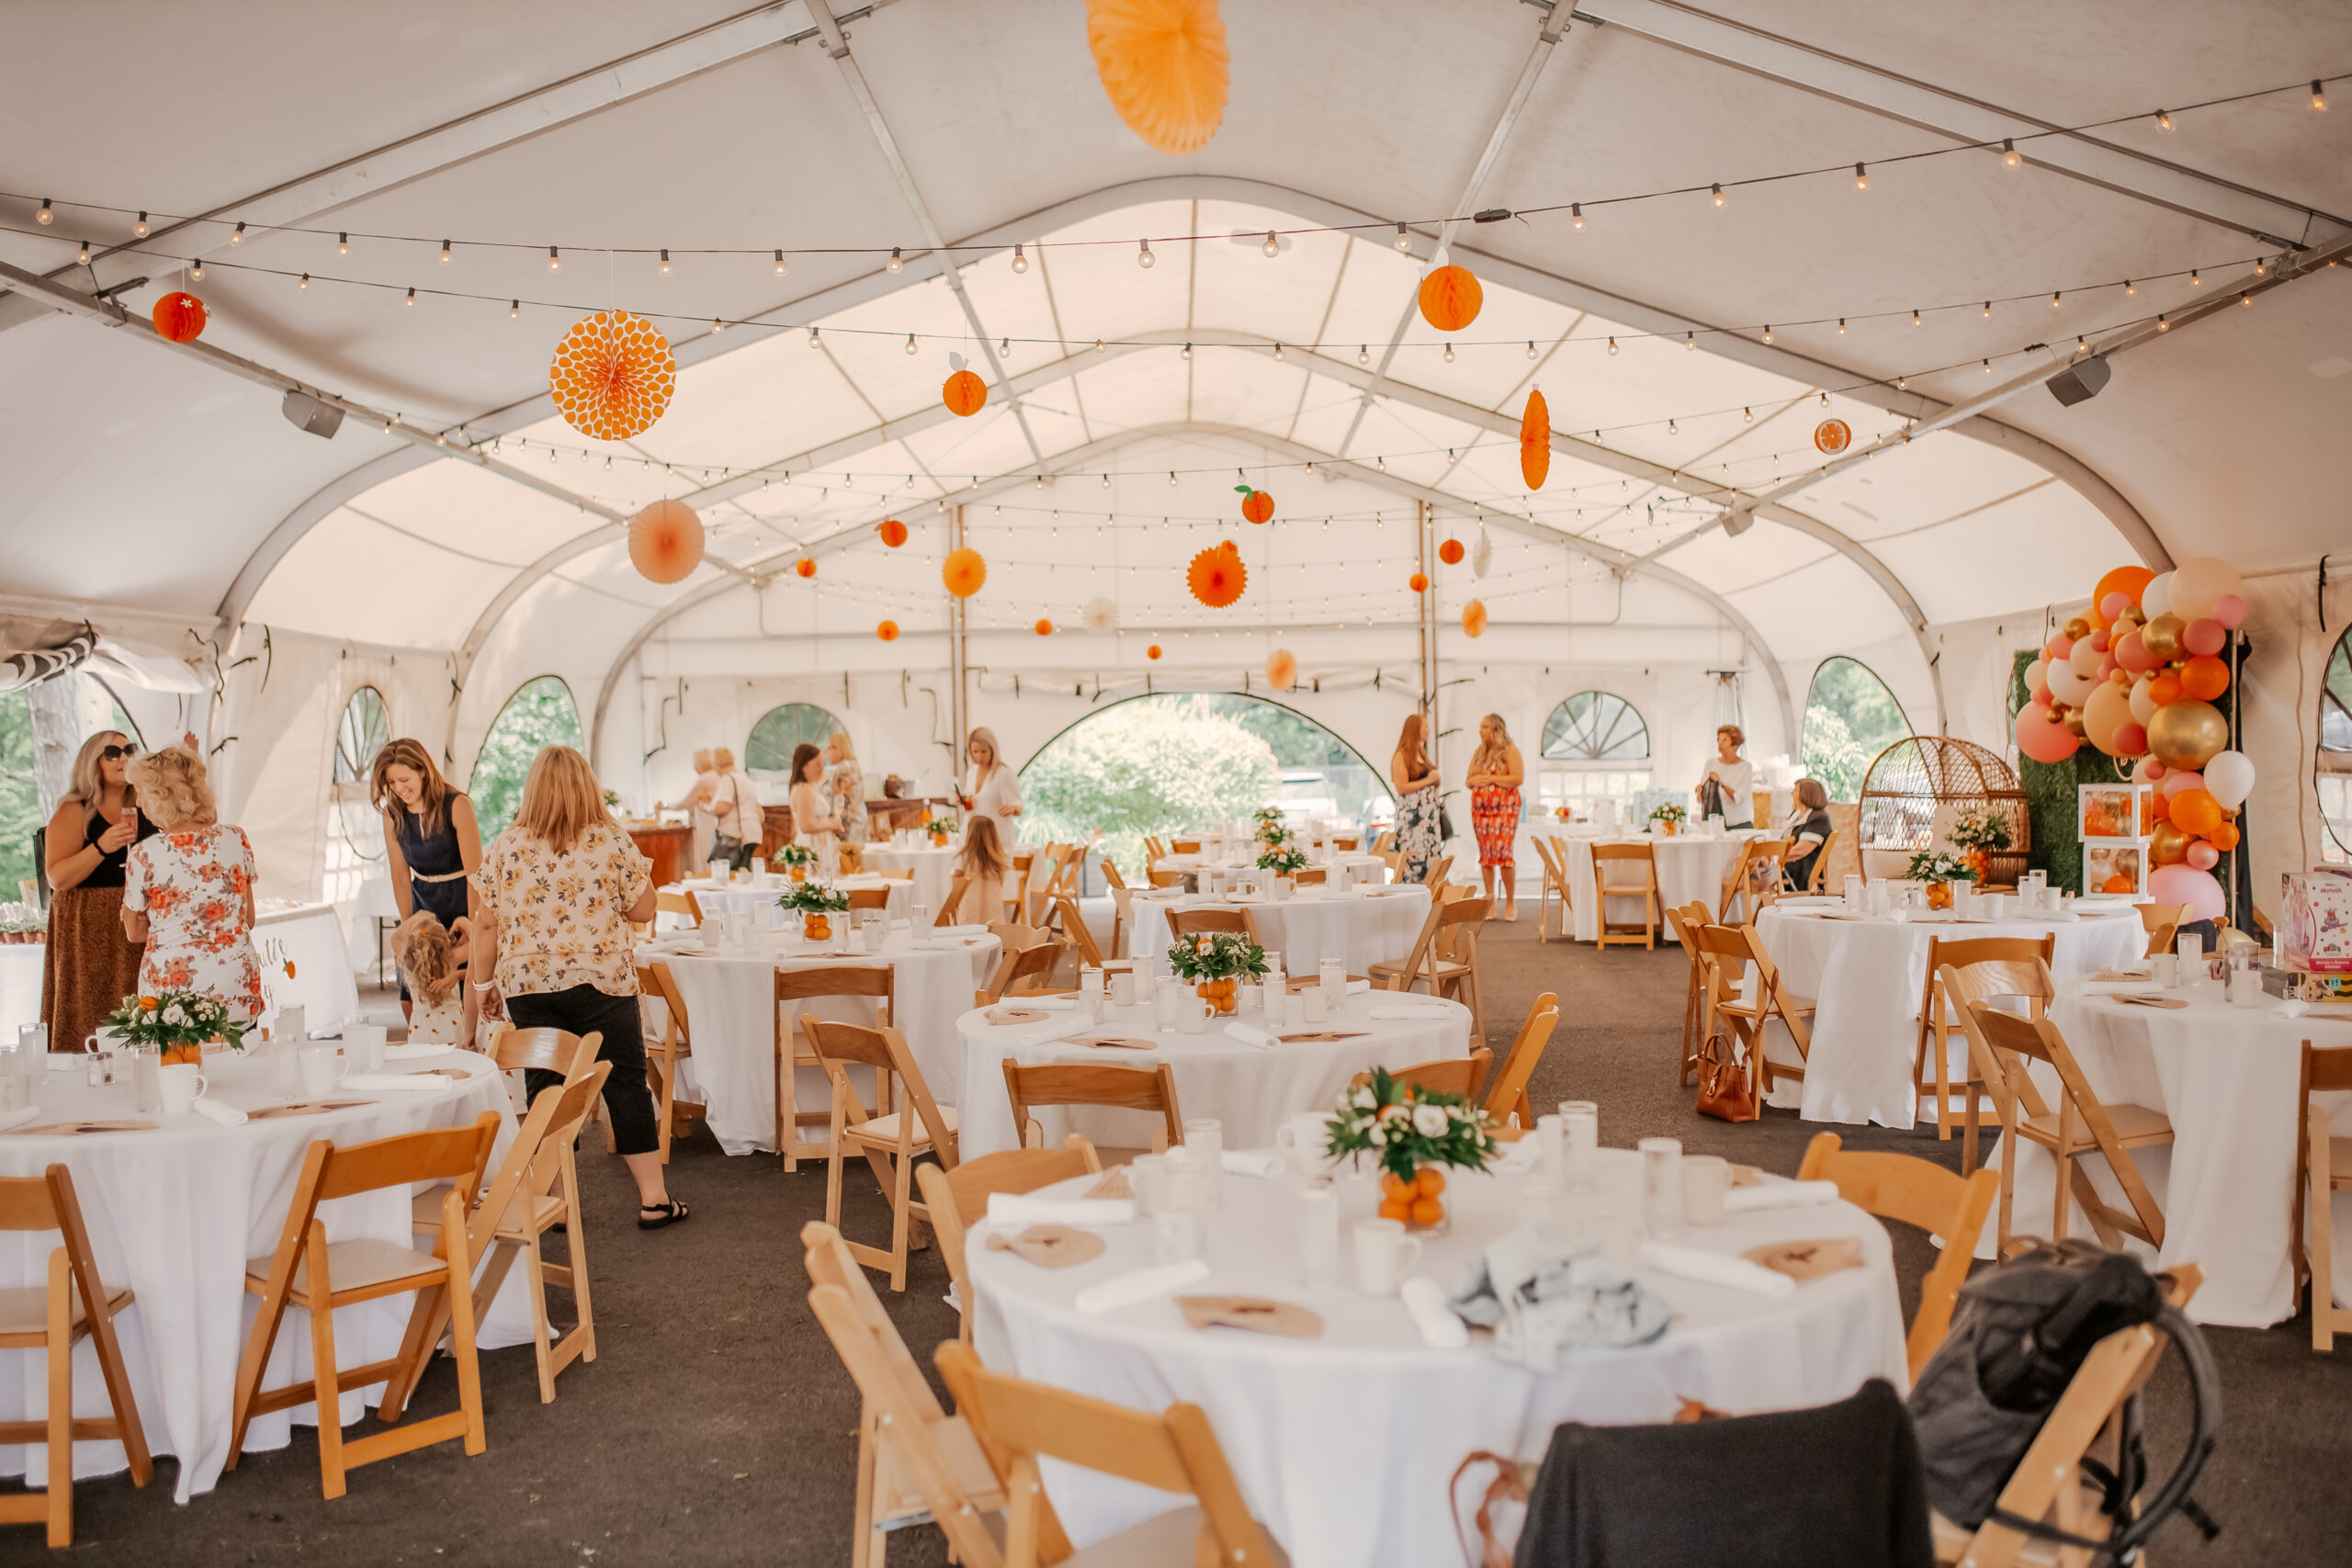 The Perfect Event Space